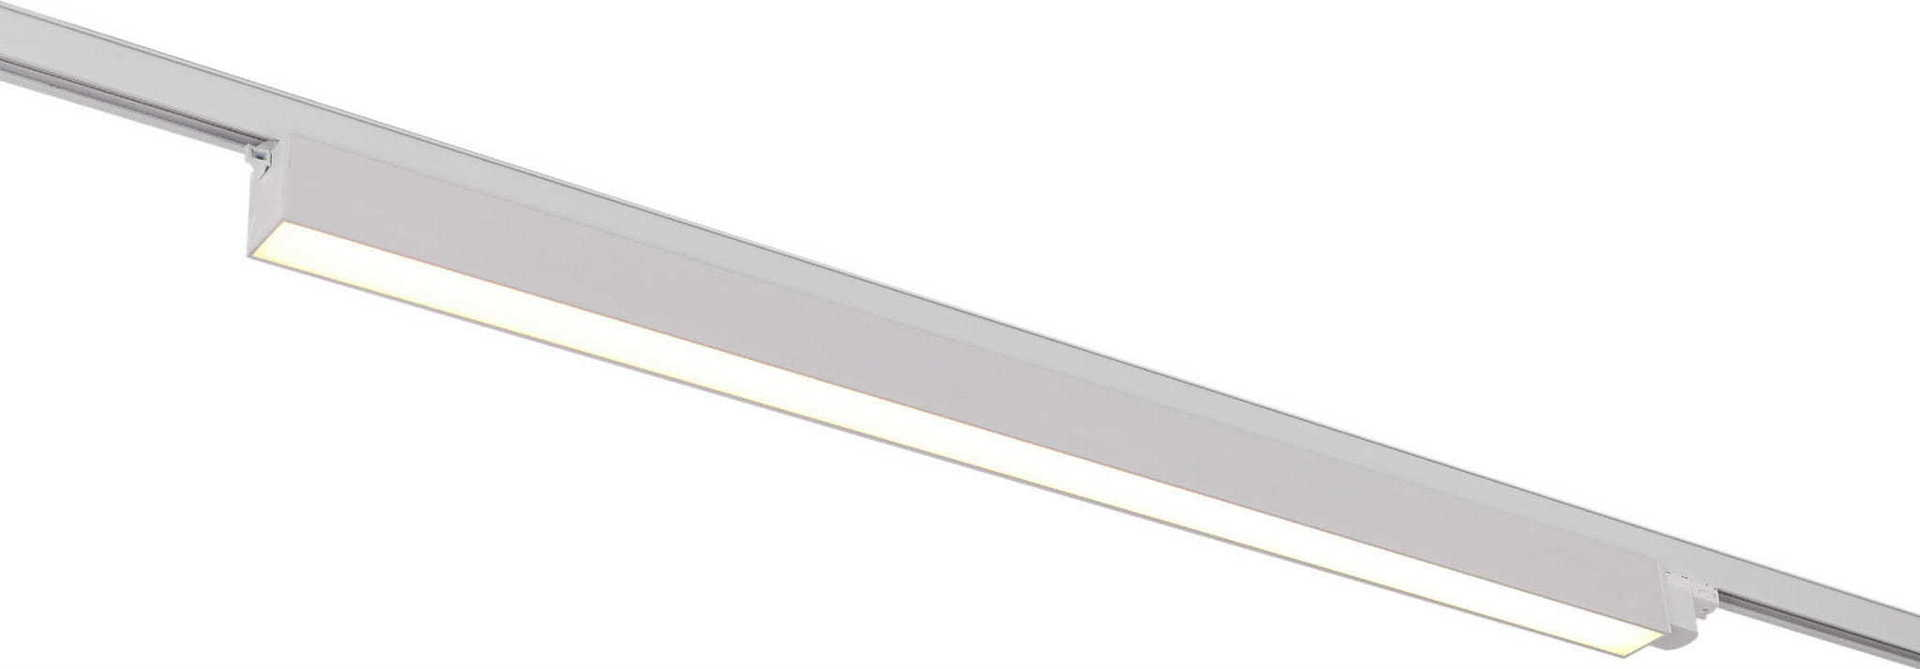 LINEAR S0010 HOUSING FOR A BUSBAR Max Light